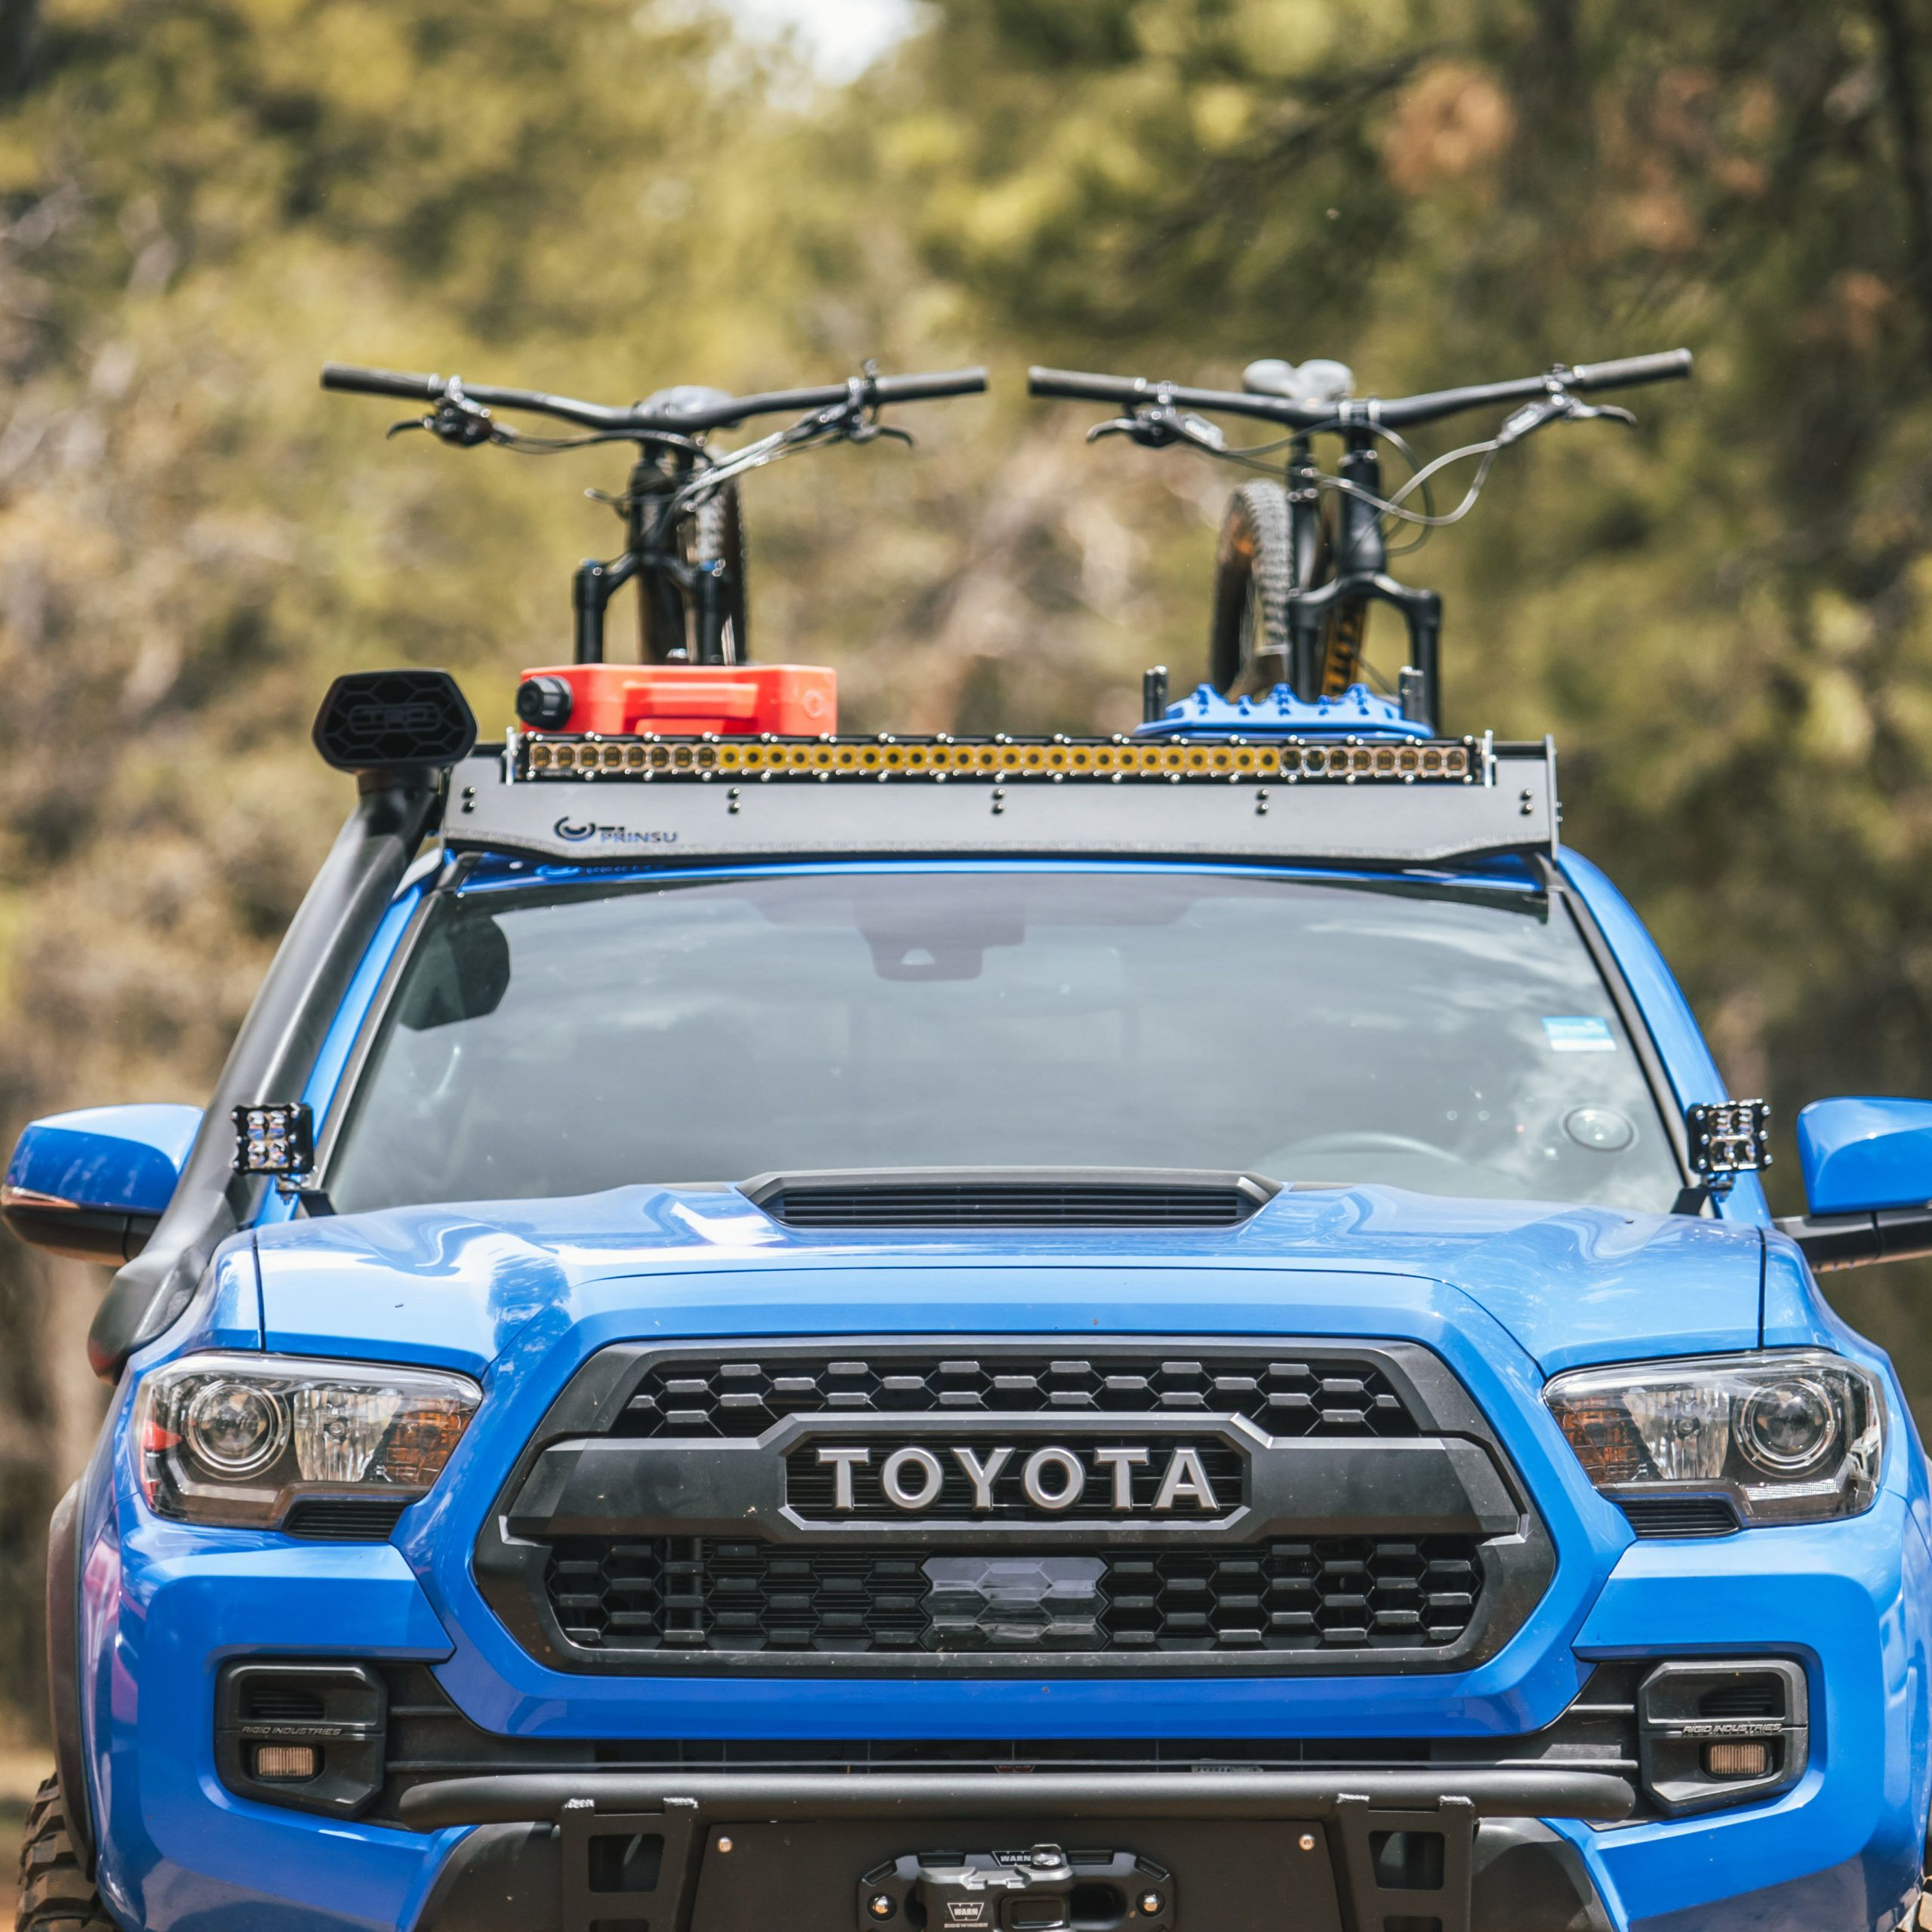 Special Edition T2/T3 Cab Rack with Toyota Desert Air